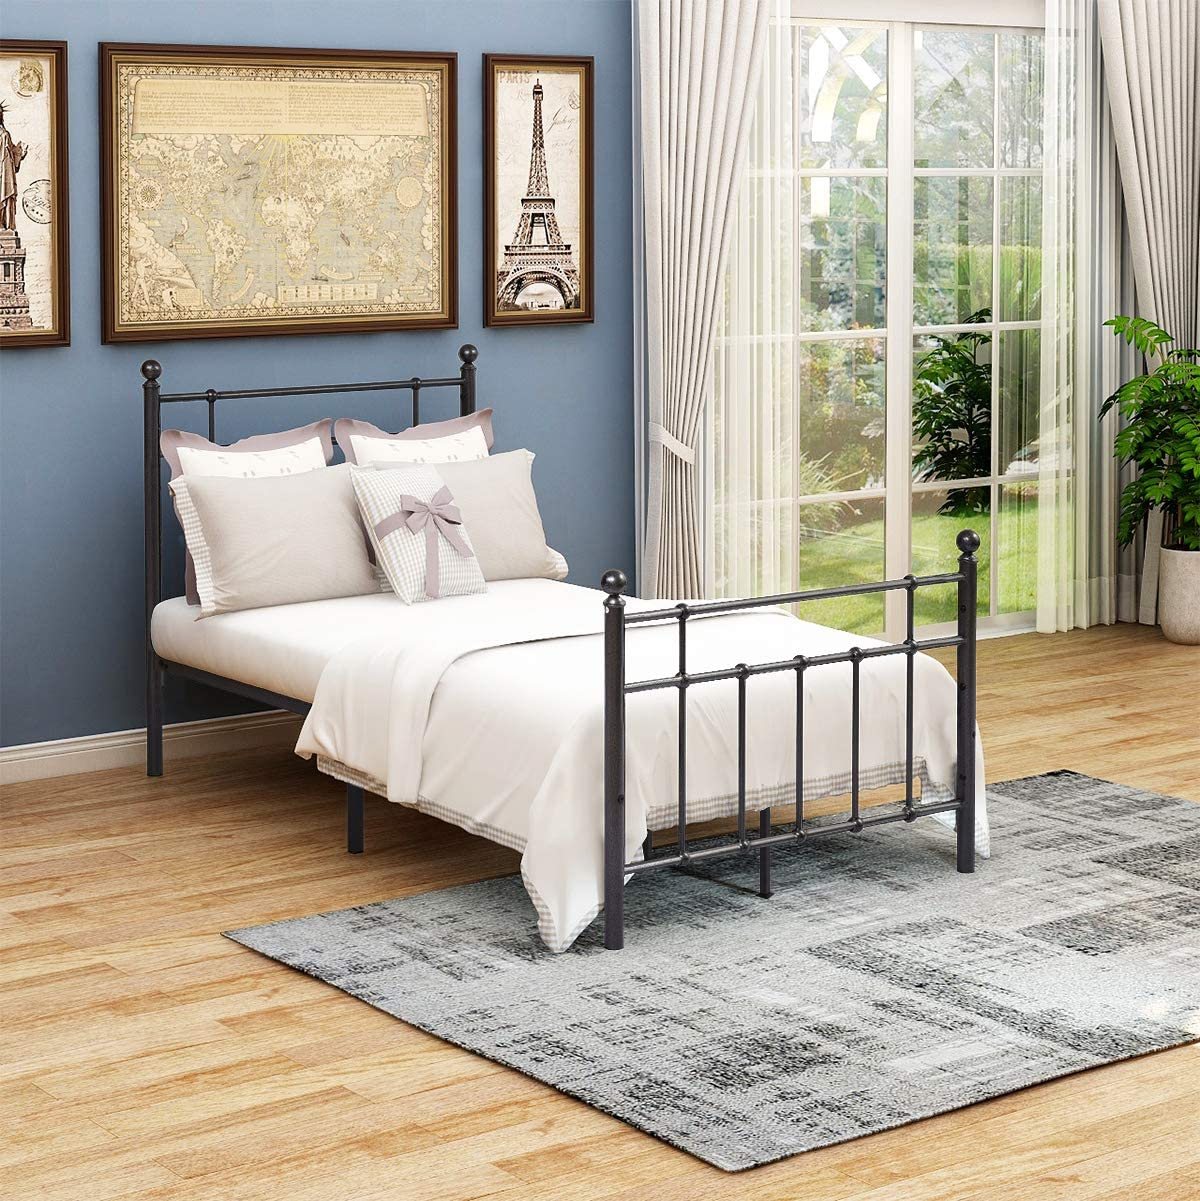 JURMERRY Metal Bed Frame Twin Size with Headboard and Mattress Foundation Stable Metal Slats Modern Style Twin, Black Silver